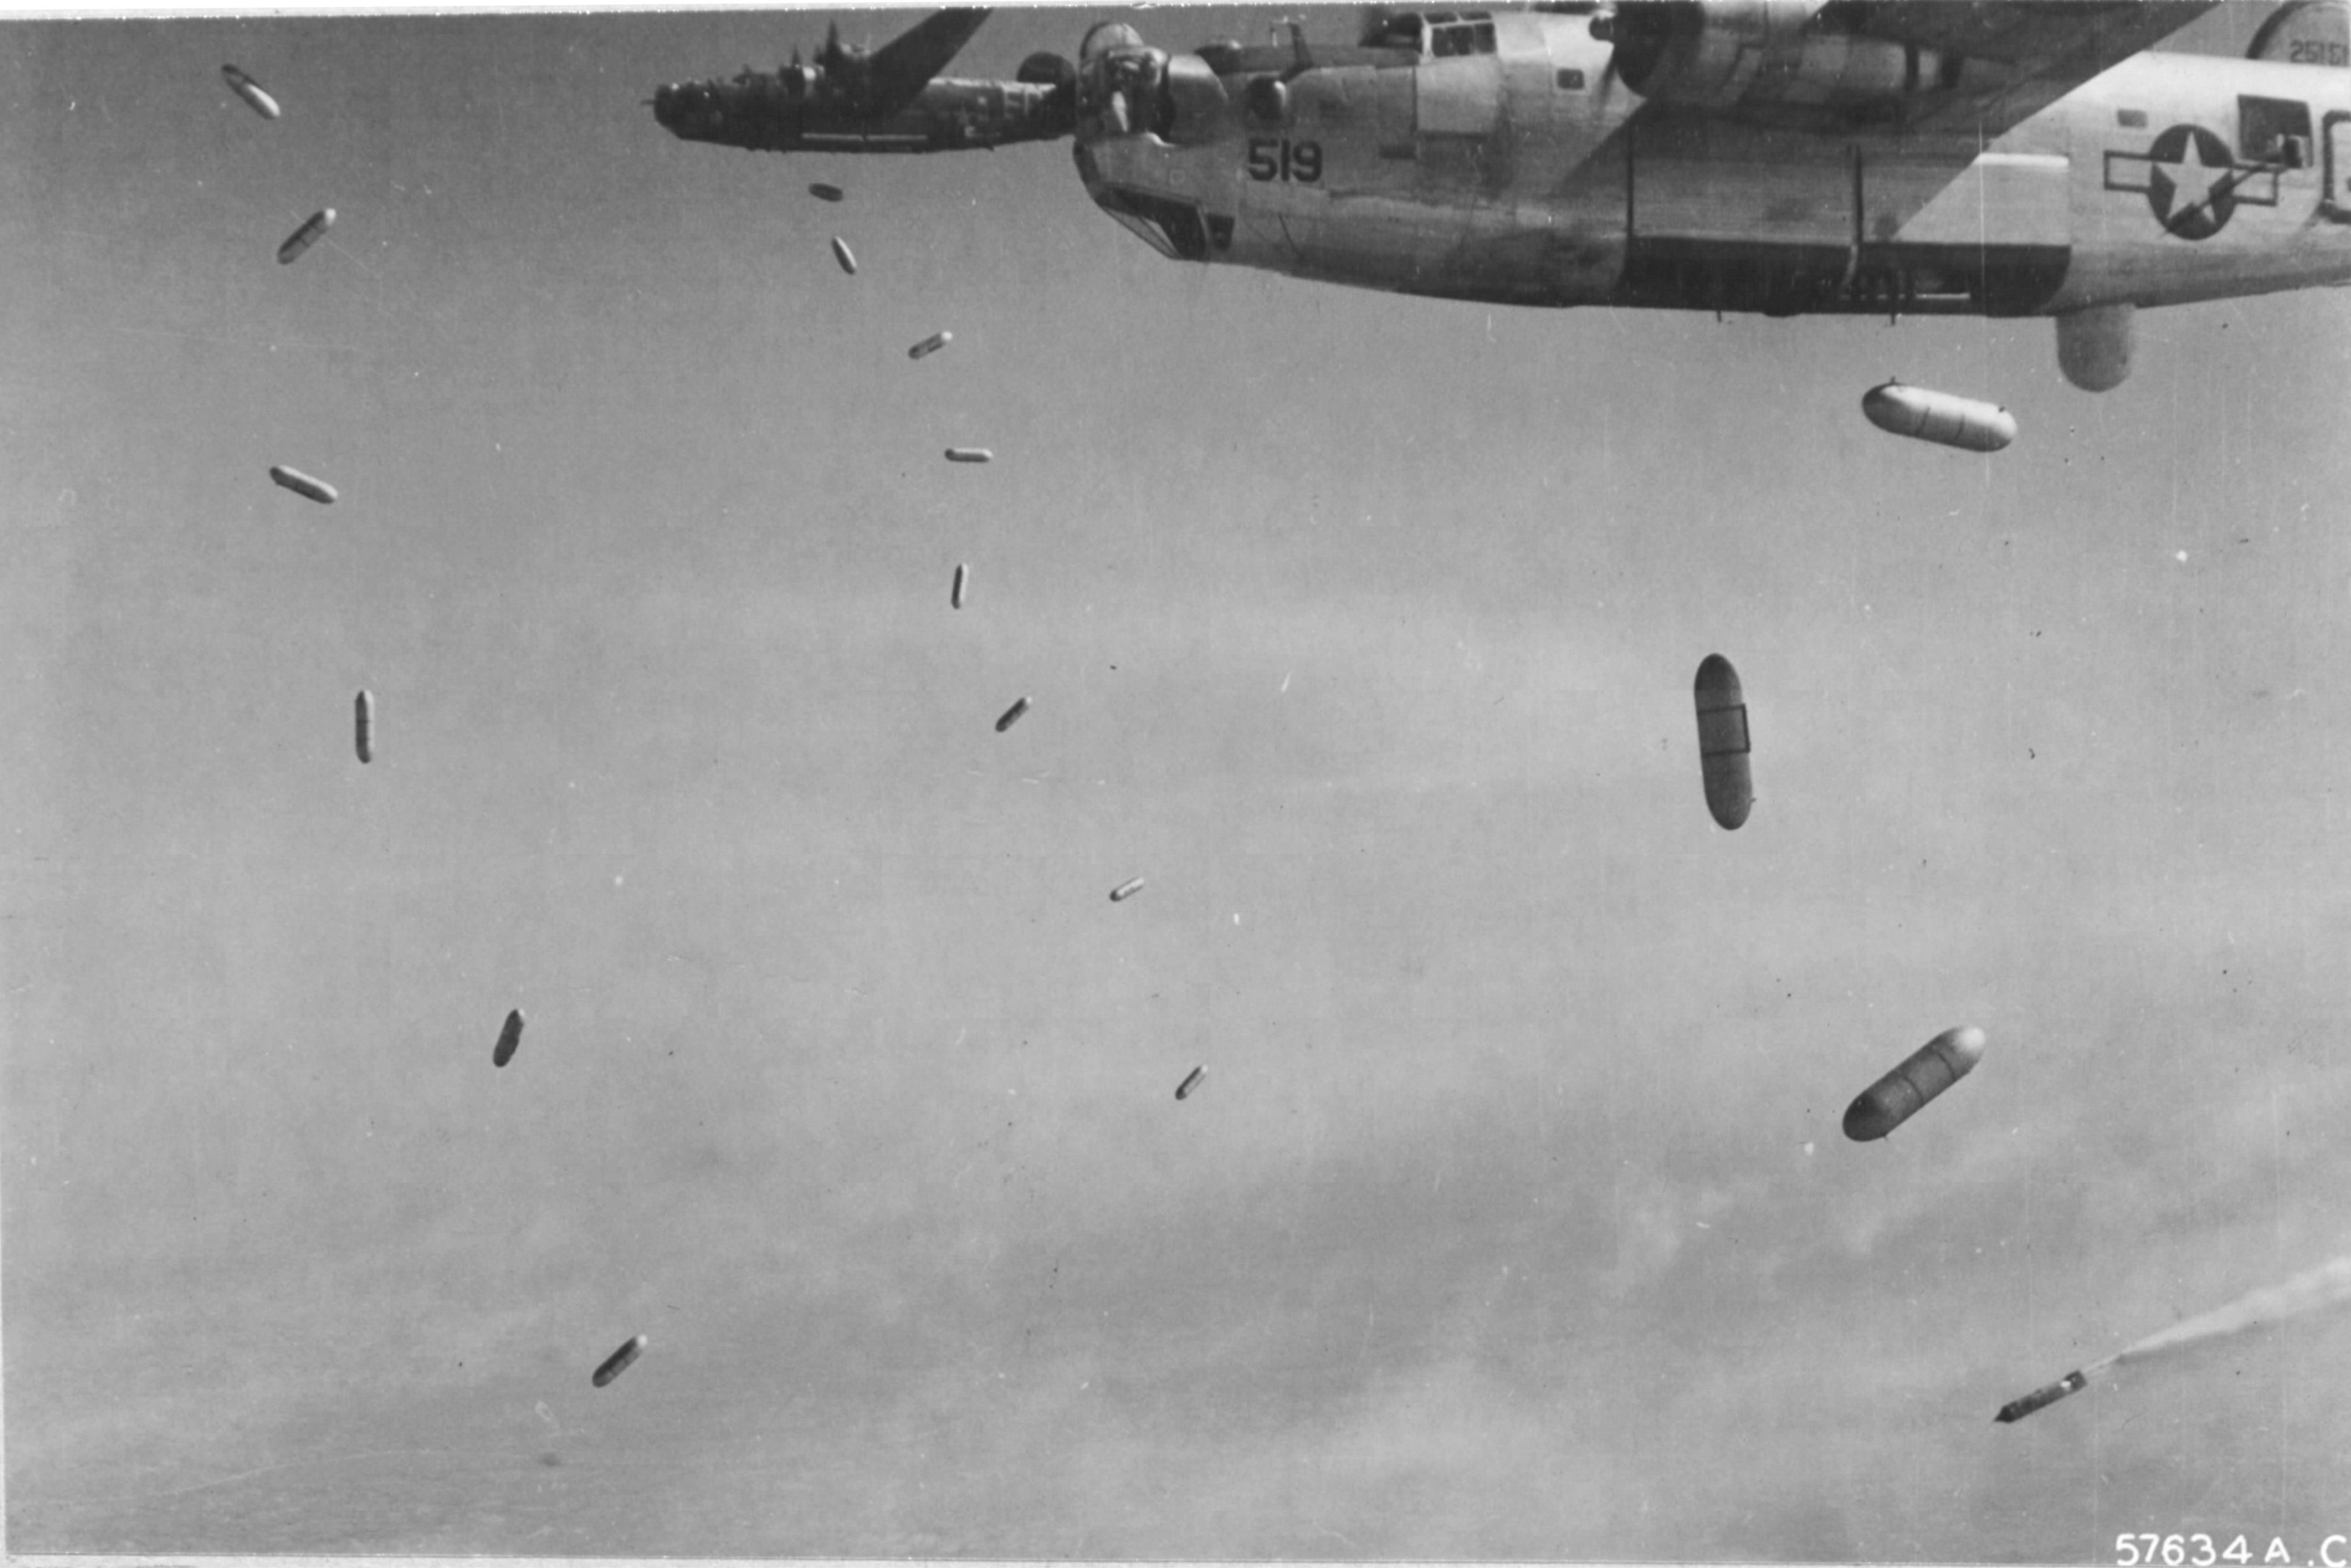 Caption: B-24J Liberators of the 579th Bomb Squadron drop incendiary bombs made from fighter plane drop tanks filled with napalm on targets near Royan, France, Apr 15 1945.